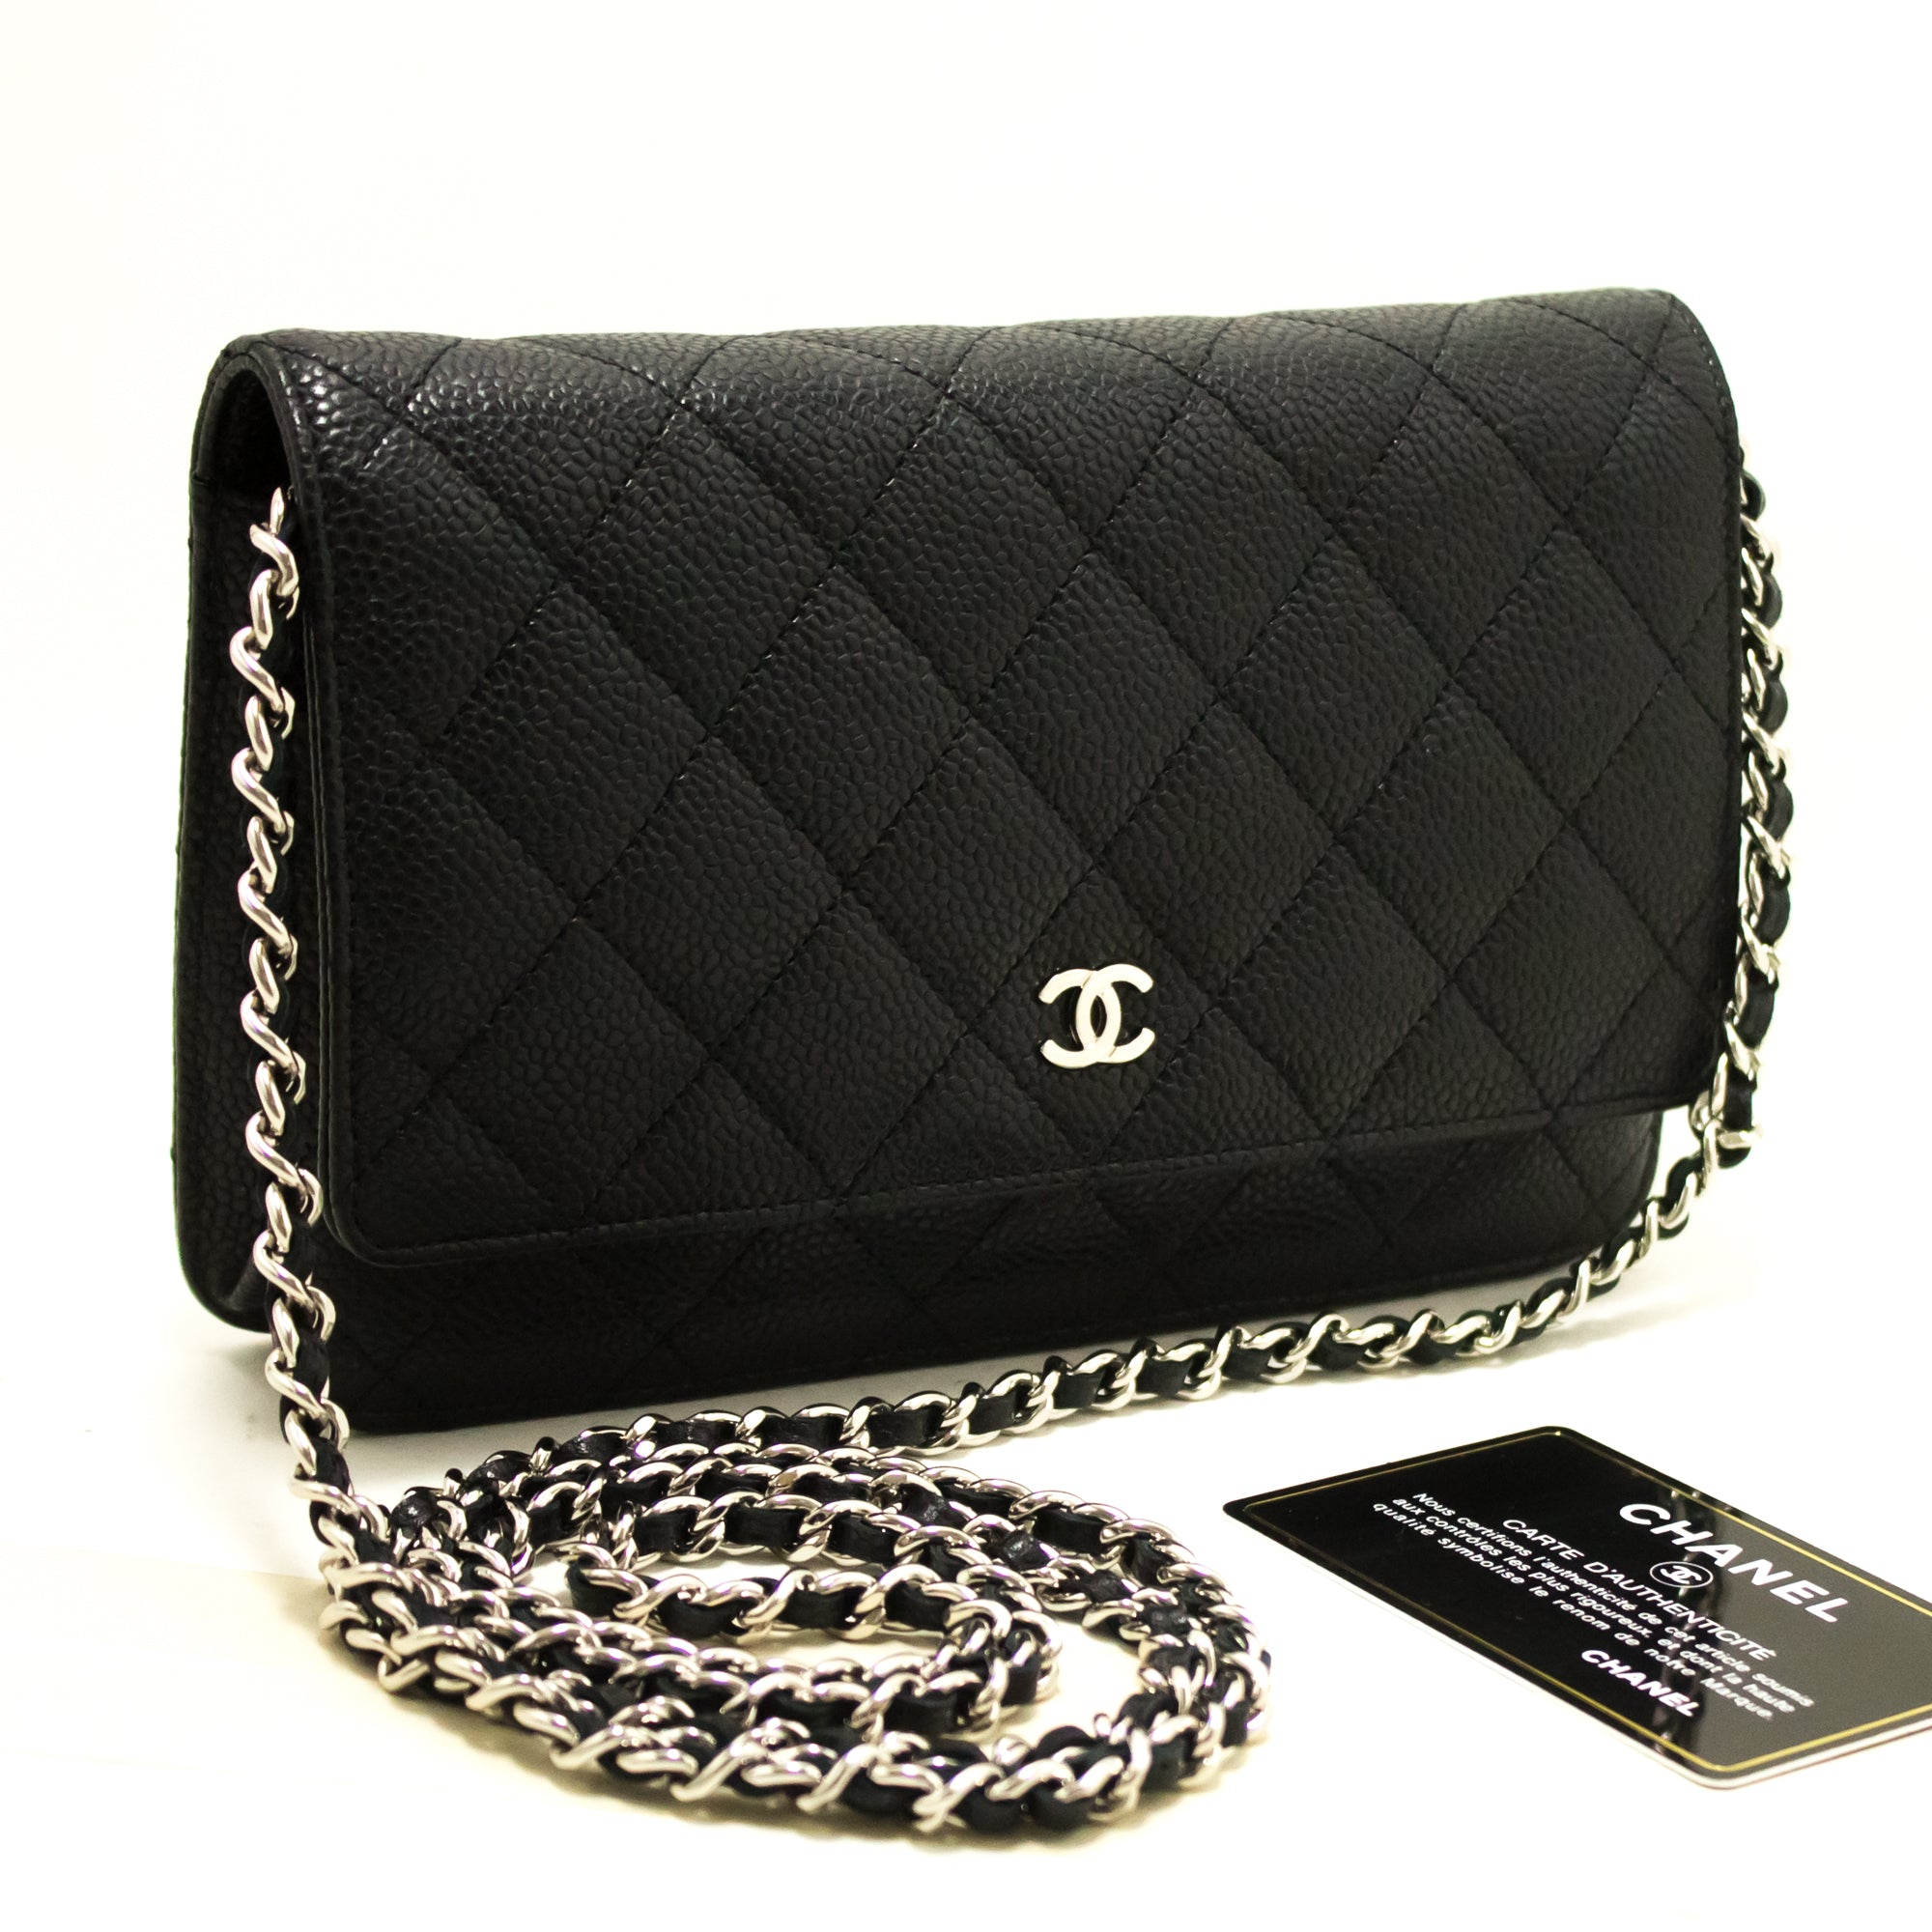 1bdcce7bdf2afe ... CHANEL Caviar Wallet On Chain WOC Black Shoulder Bag Crossbody Q07- Chanel-hannari- ...